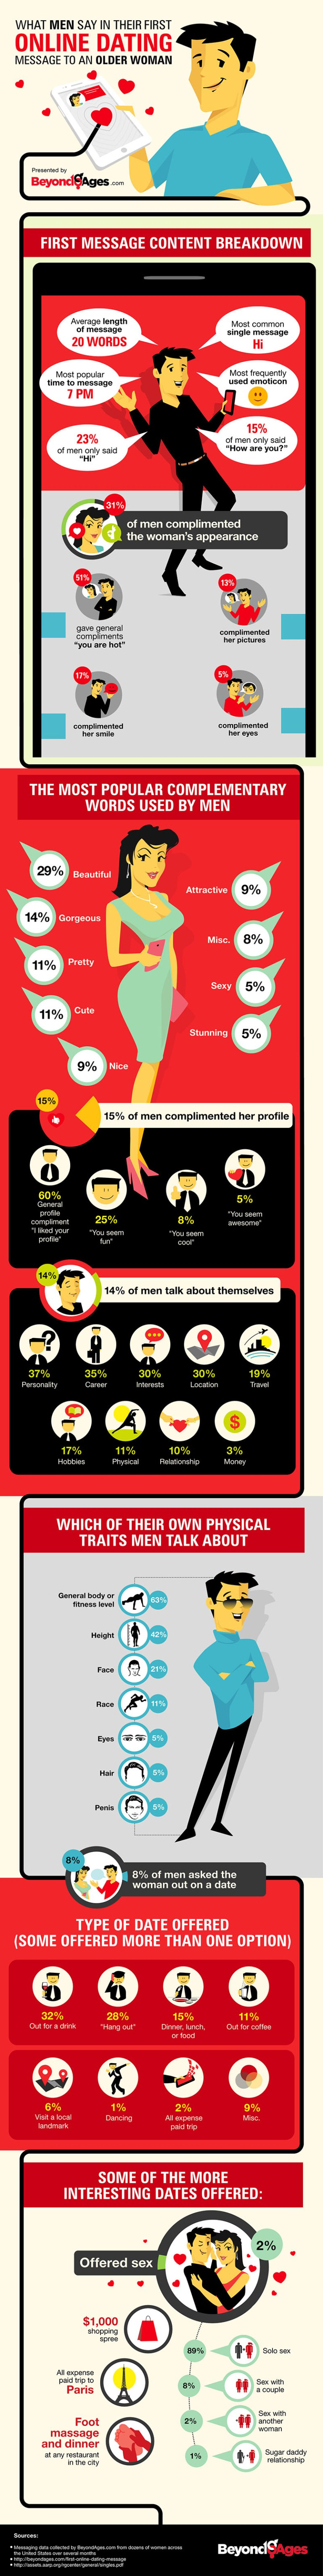 BeyondAges.com-What-Do-Men-Say-On-First-Date-Infographic